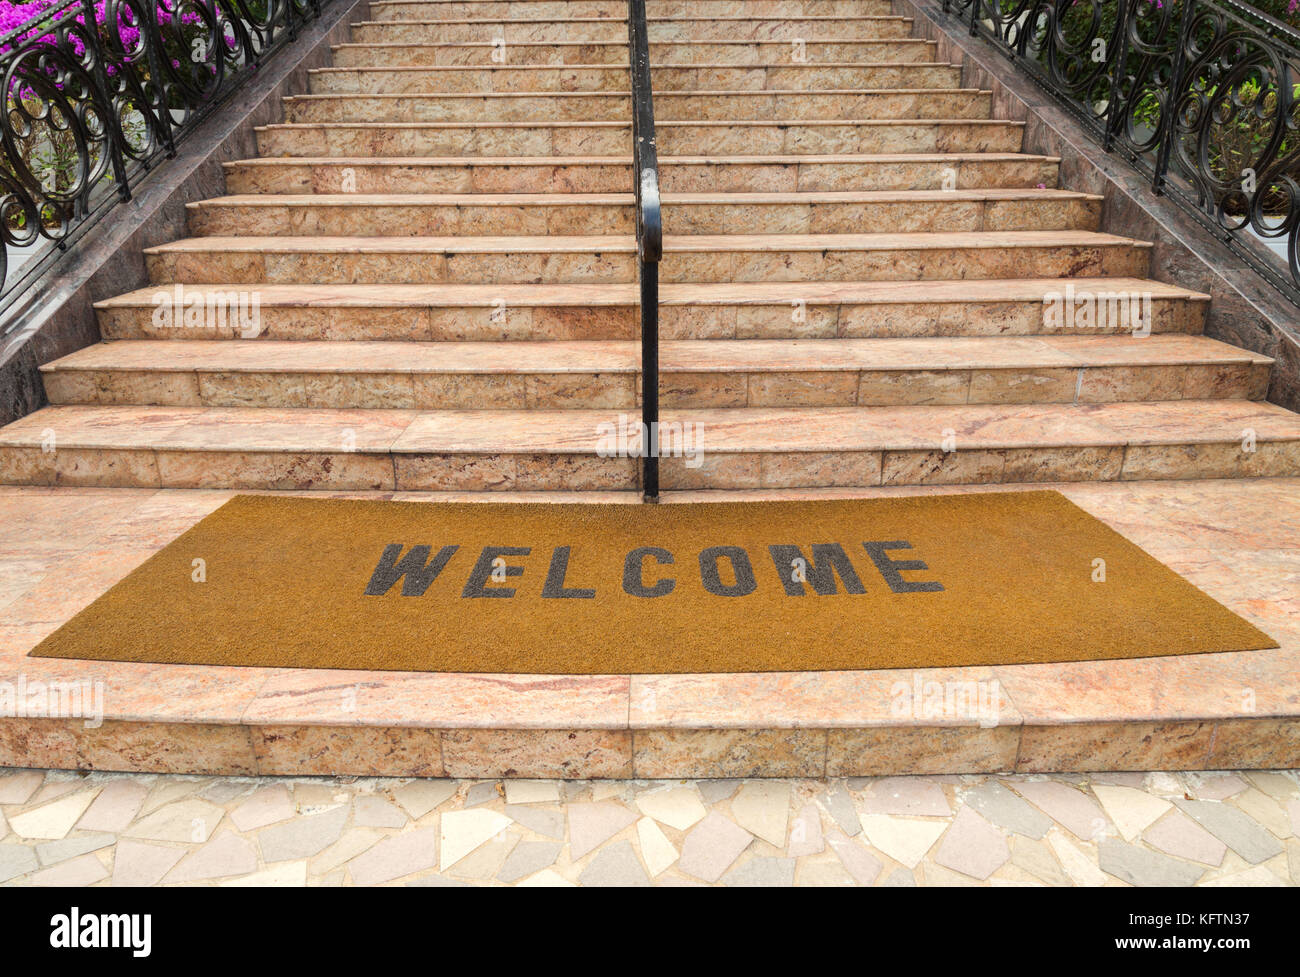 Lobby Carpet Stock Photos Amp Lobby Carpet Stock Images Alamy